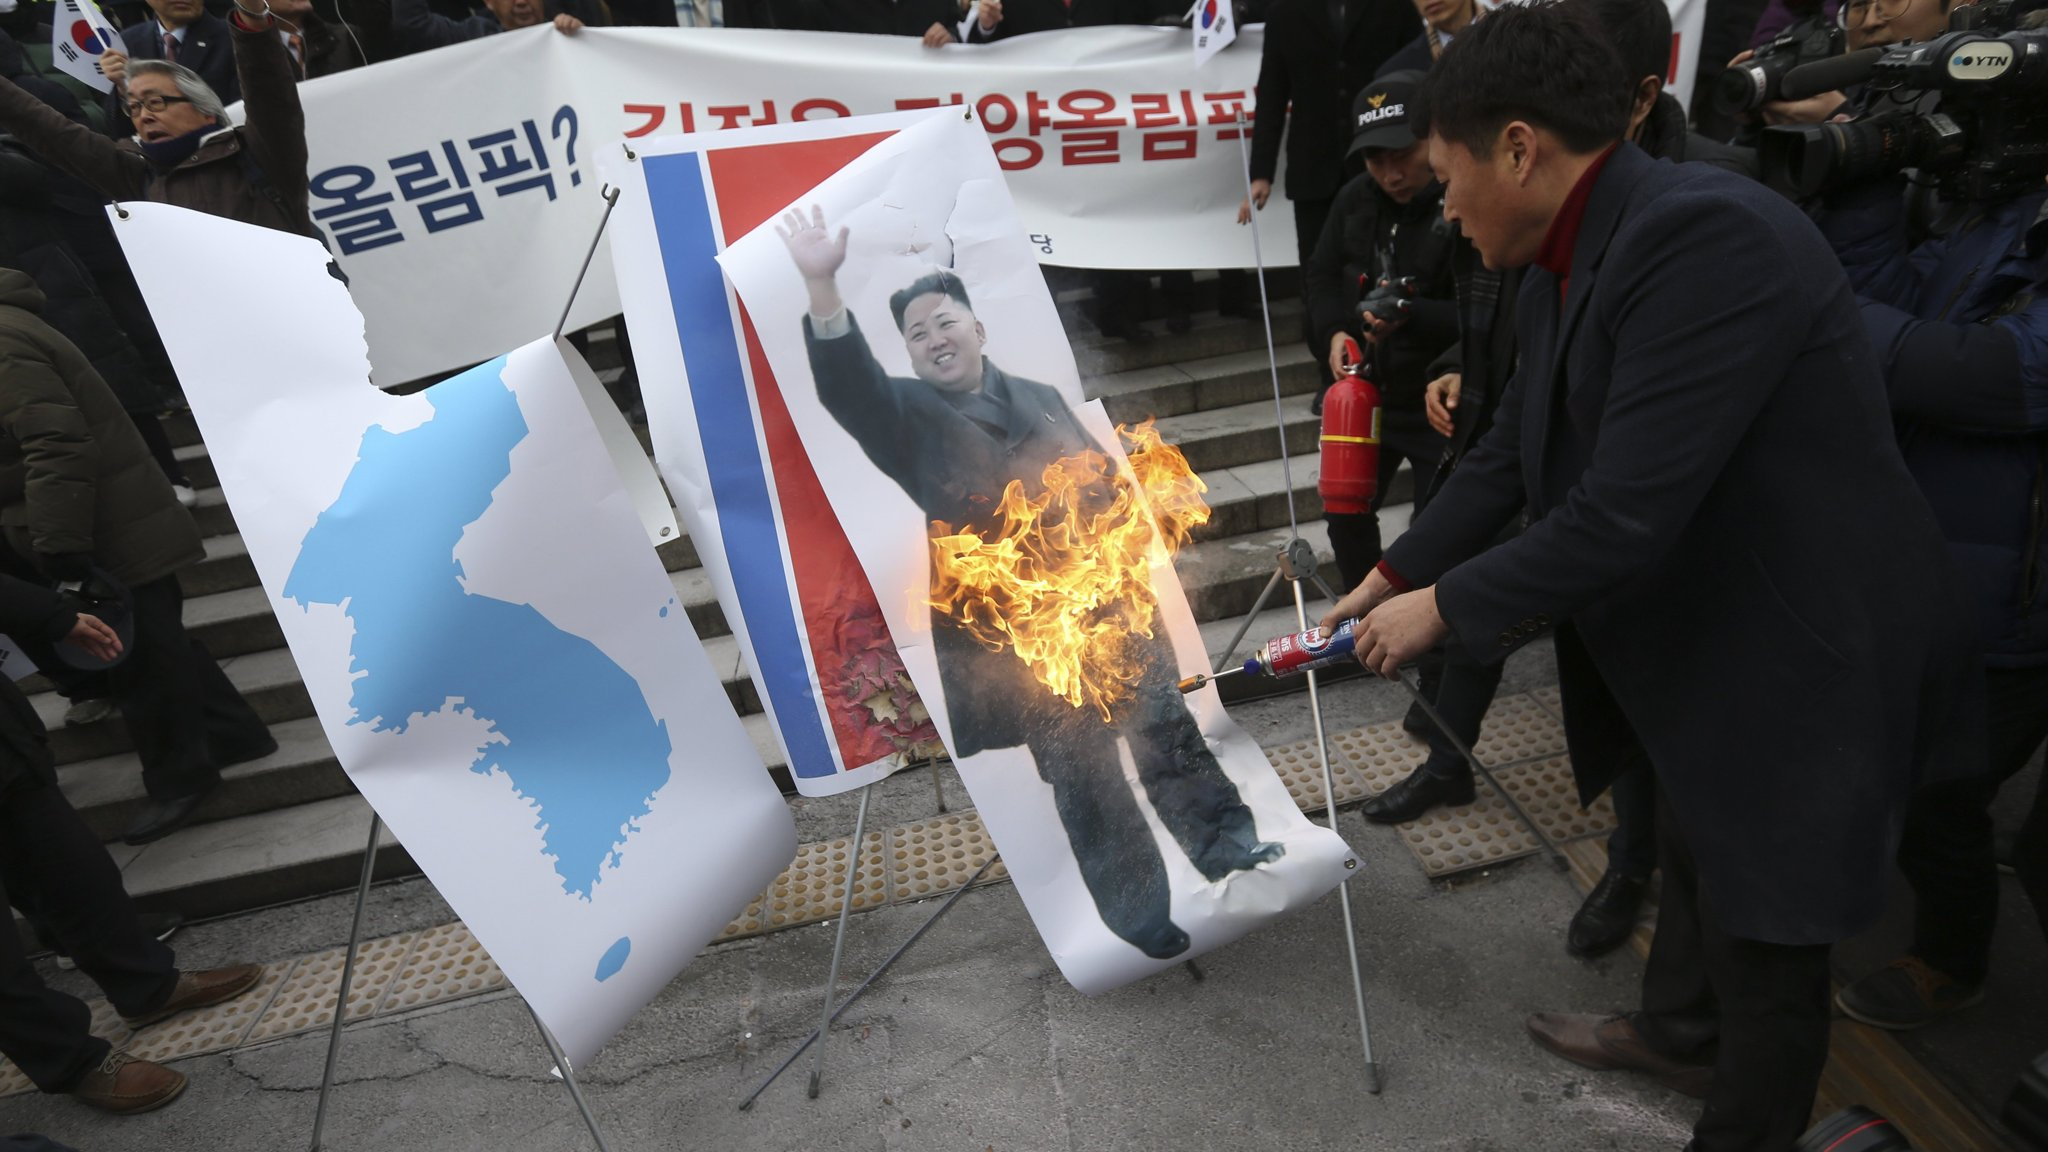 South Korea faces backlash over North's Olympic participation